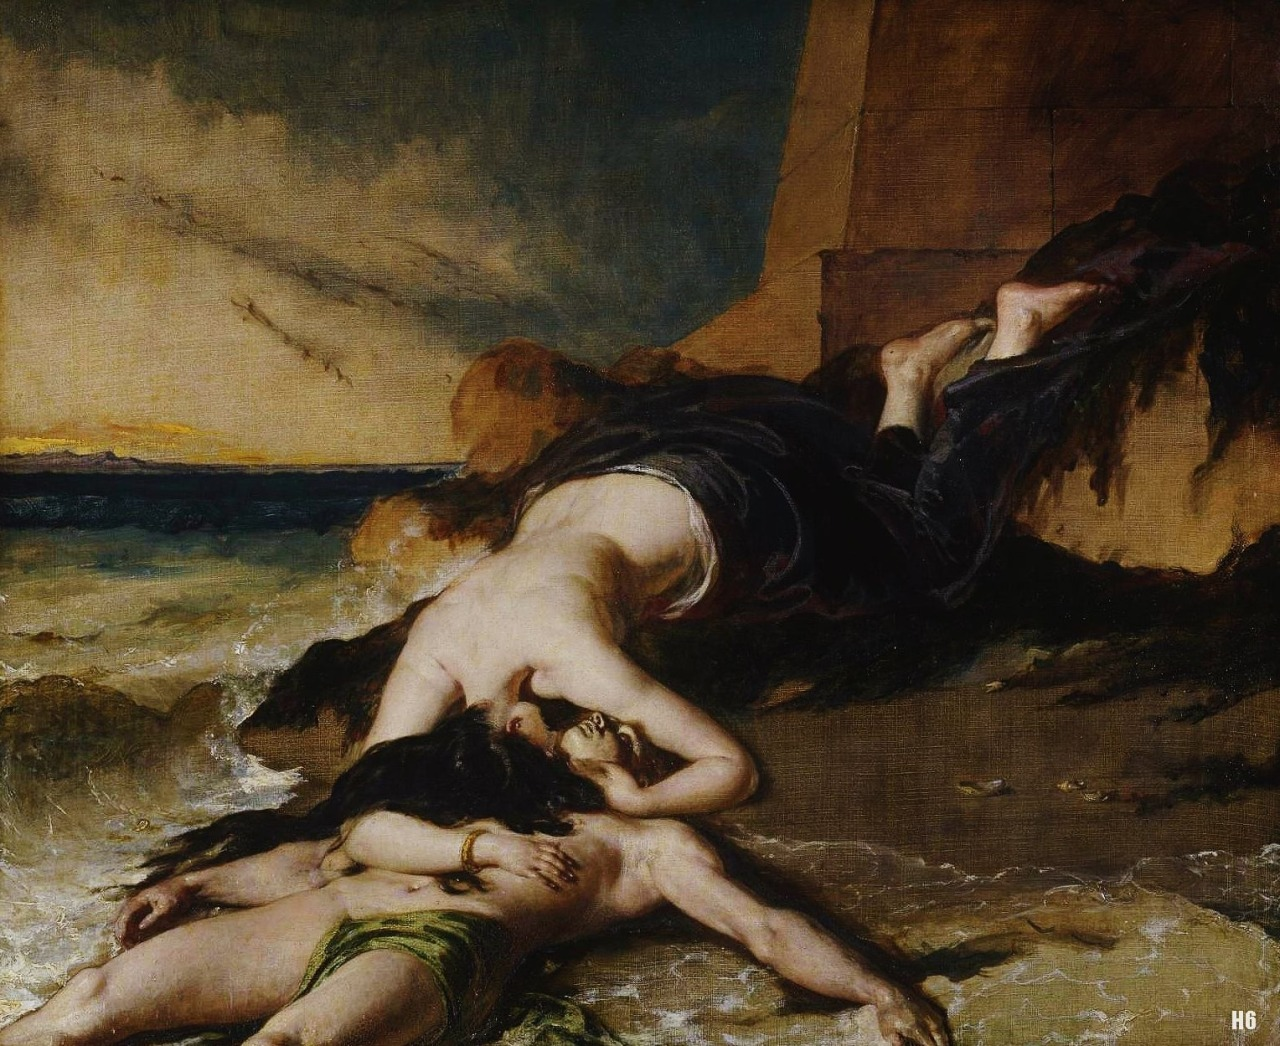 Hero, Having Thrown herself from the Tower at the Sight of Leander Drowned, Dies on his Body by William Etty, 1829